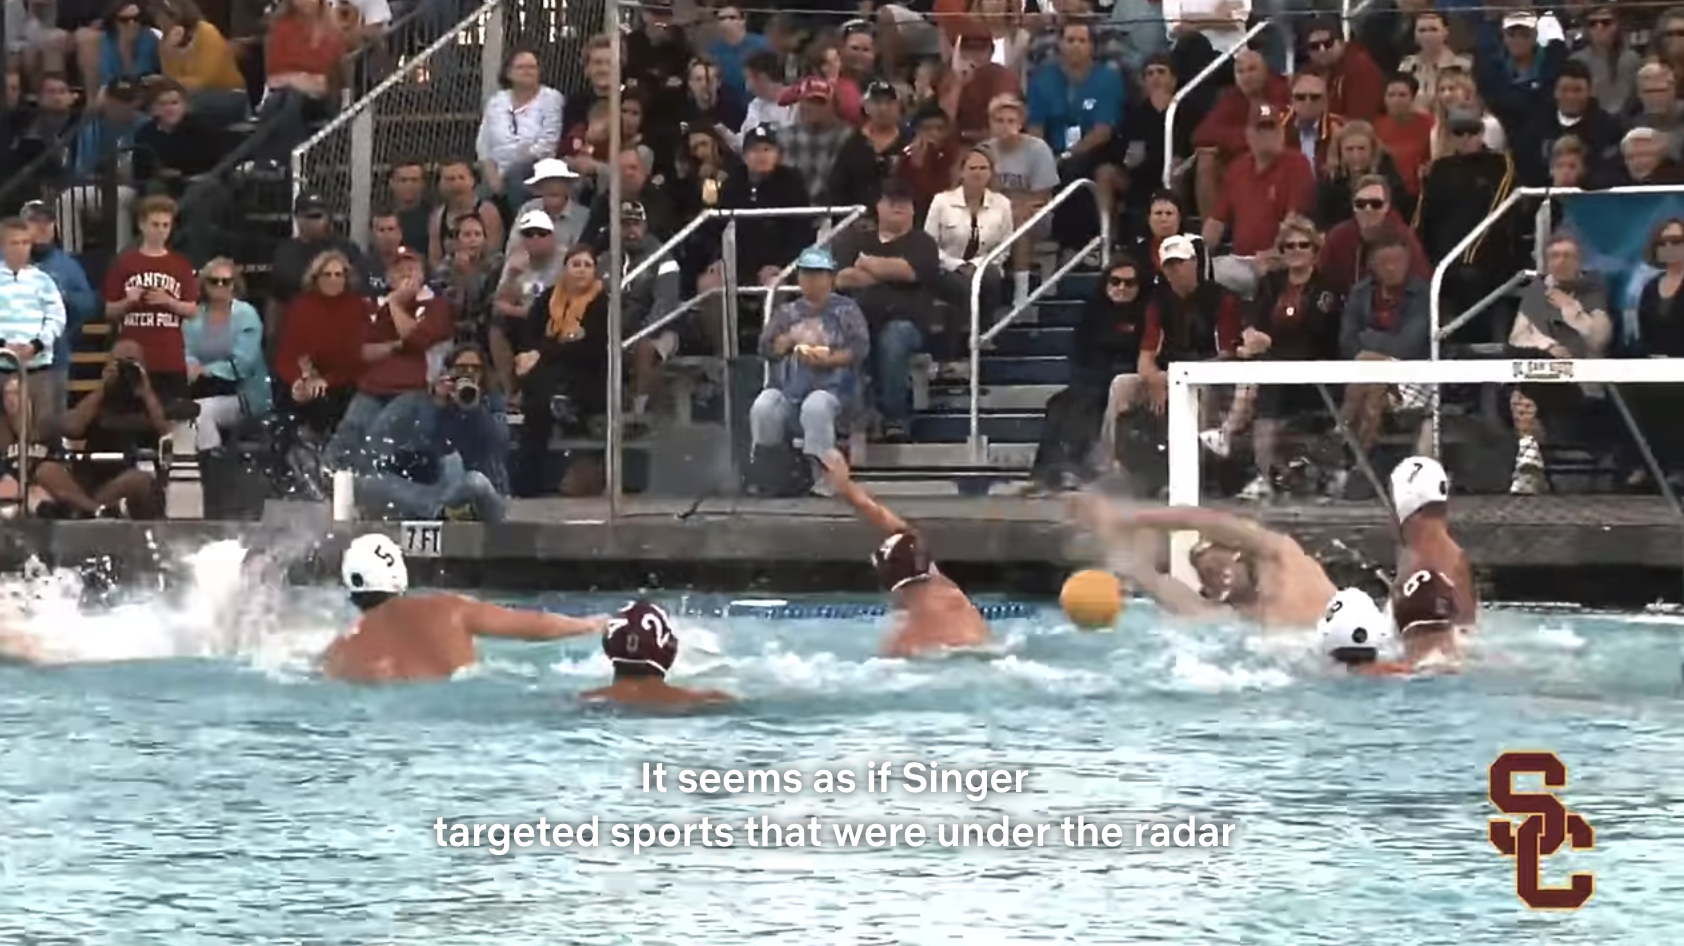 The USC water polo team playing a game